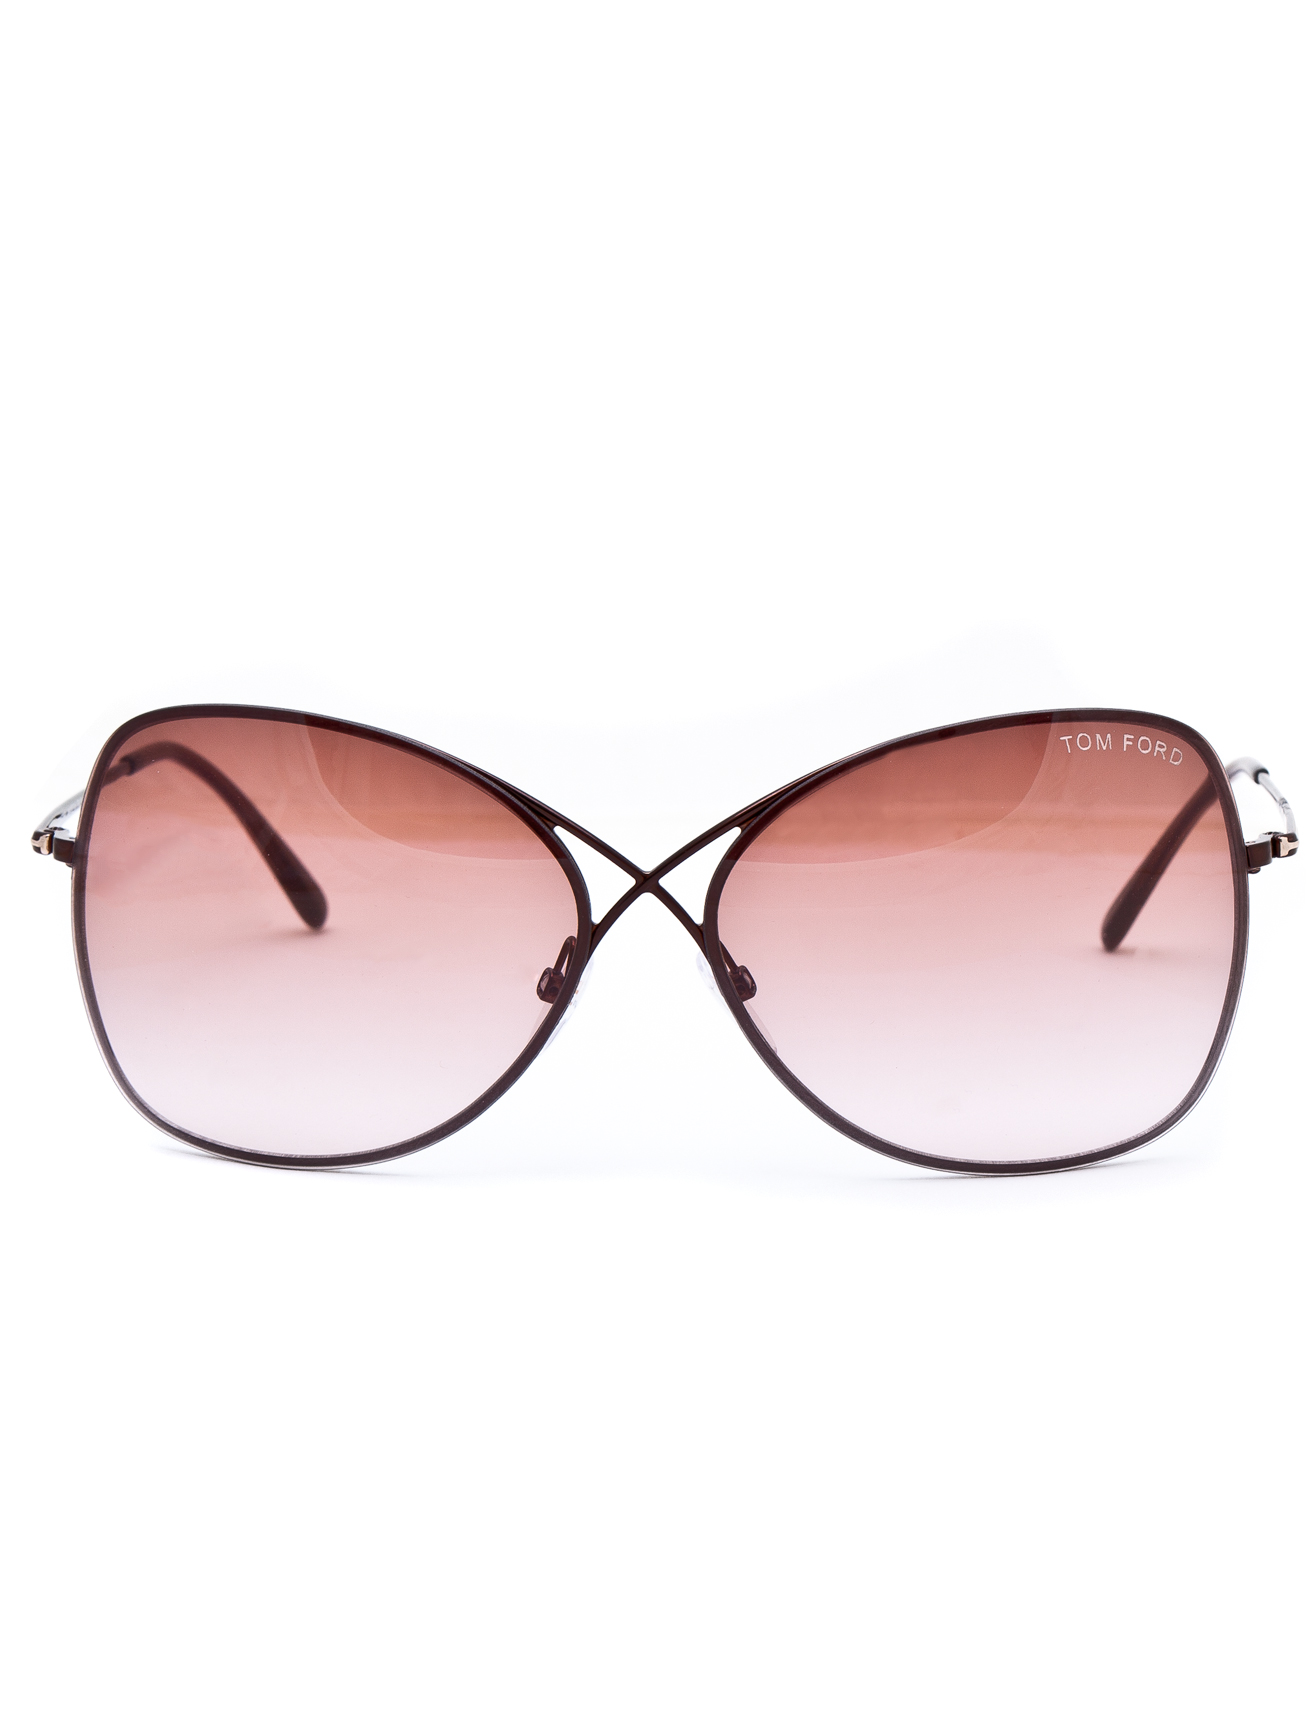 70a28308ffe Tom Ford Colette Sunglasses.Lyst Tom Ford Colette Crossover Round ...